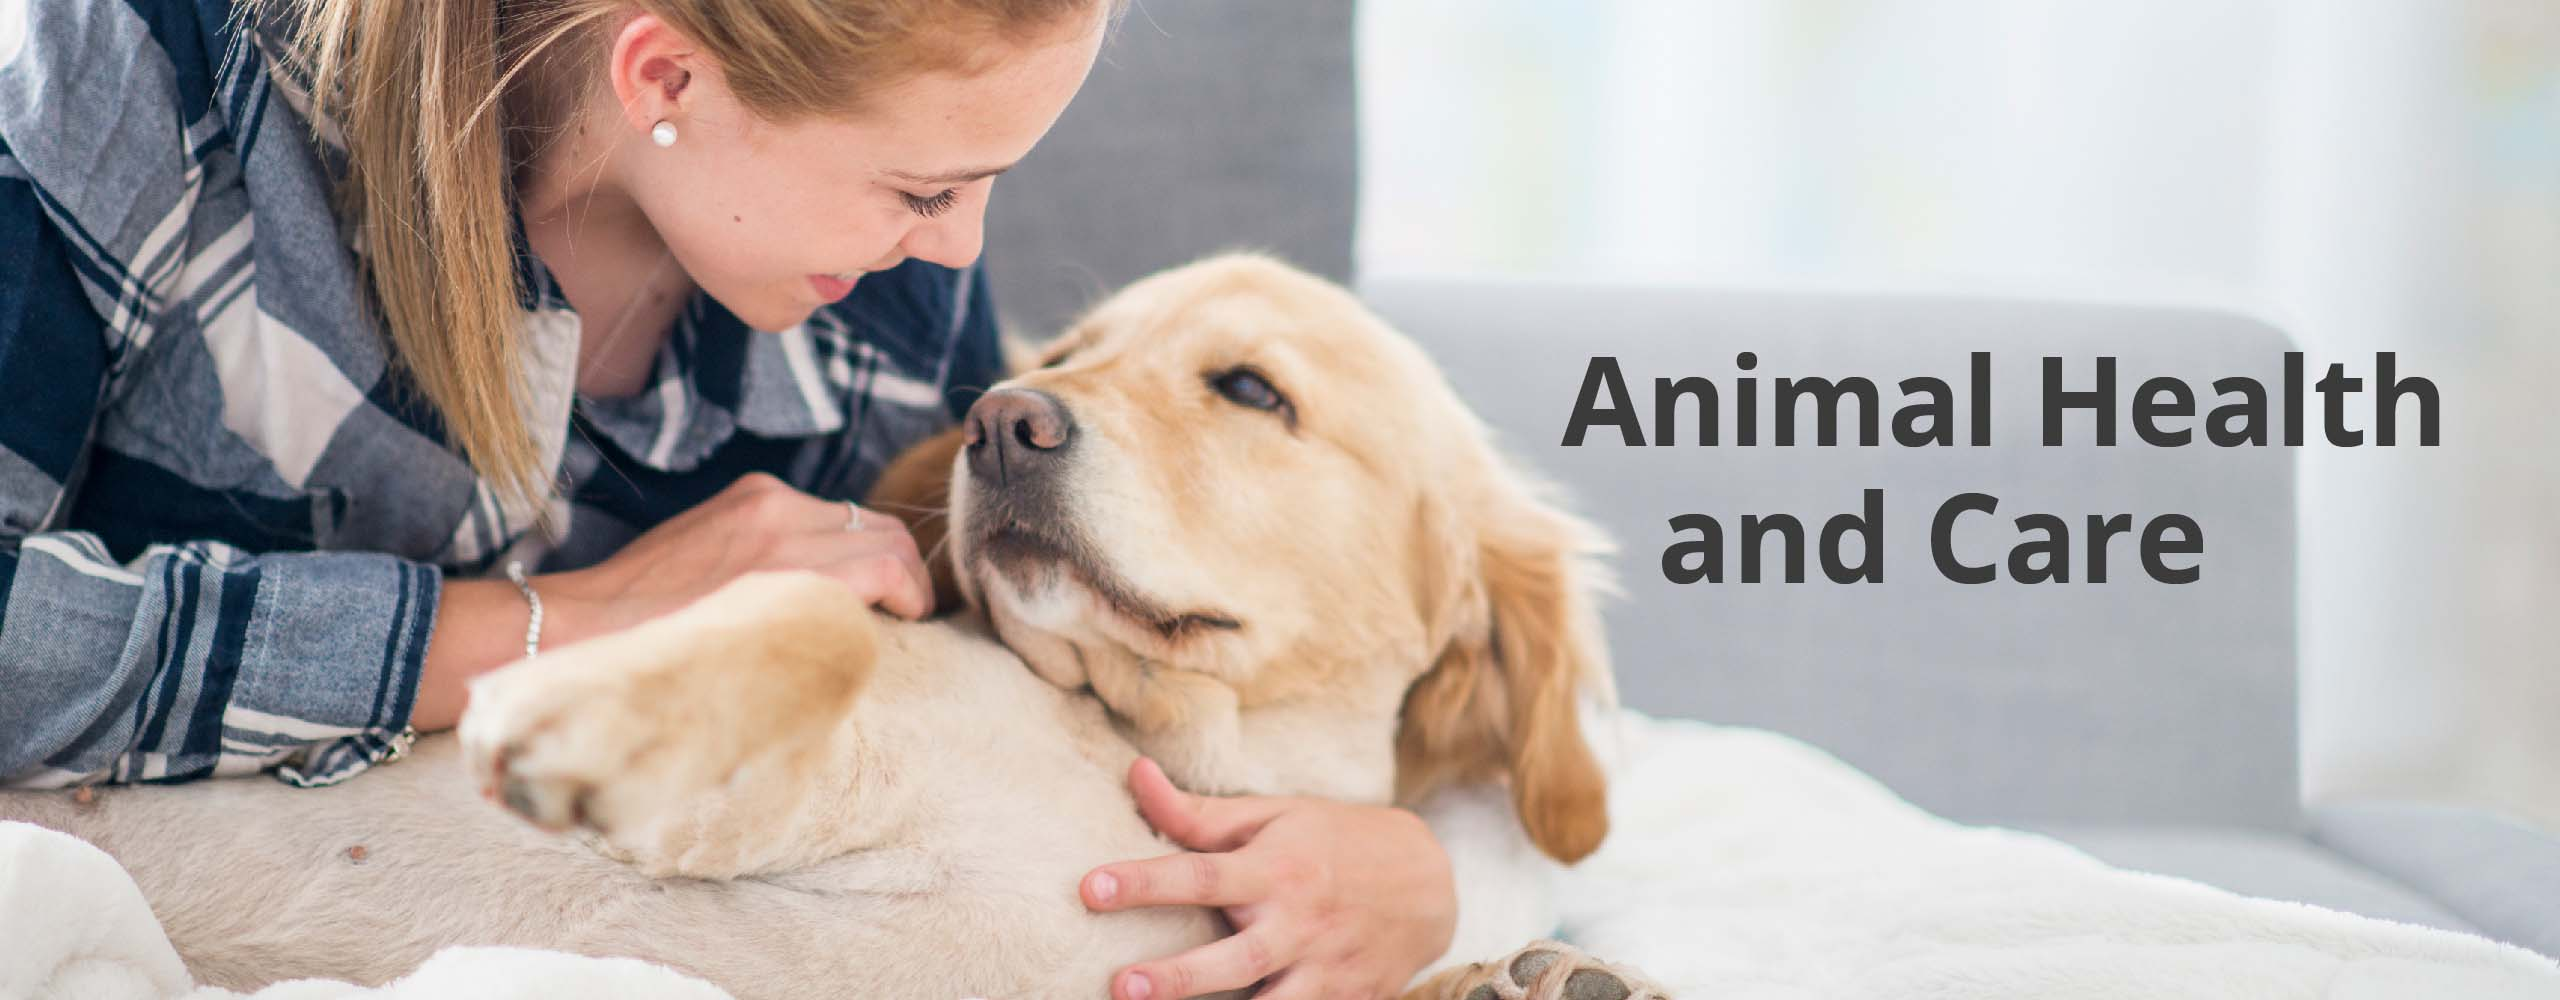 animal protection decision making based on aesthetic After the decision-making process, objective assessments should be made to   conditions and adequate protective and escape mechanisms for submissive  animals  space for group-housed animals should be based on individual  species.